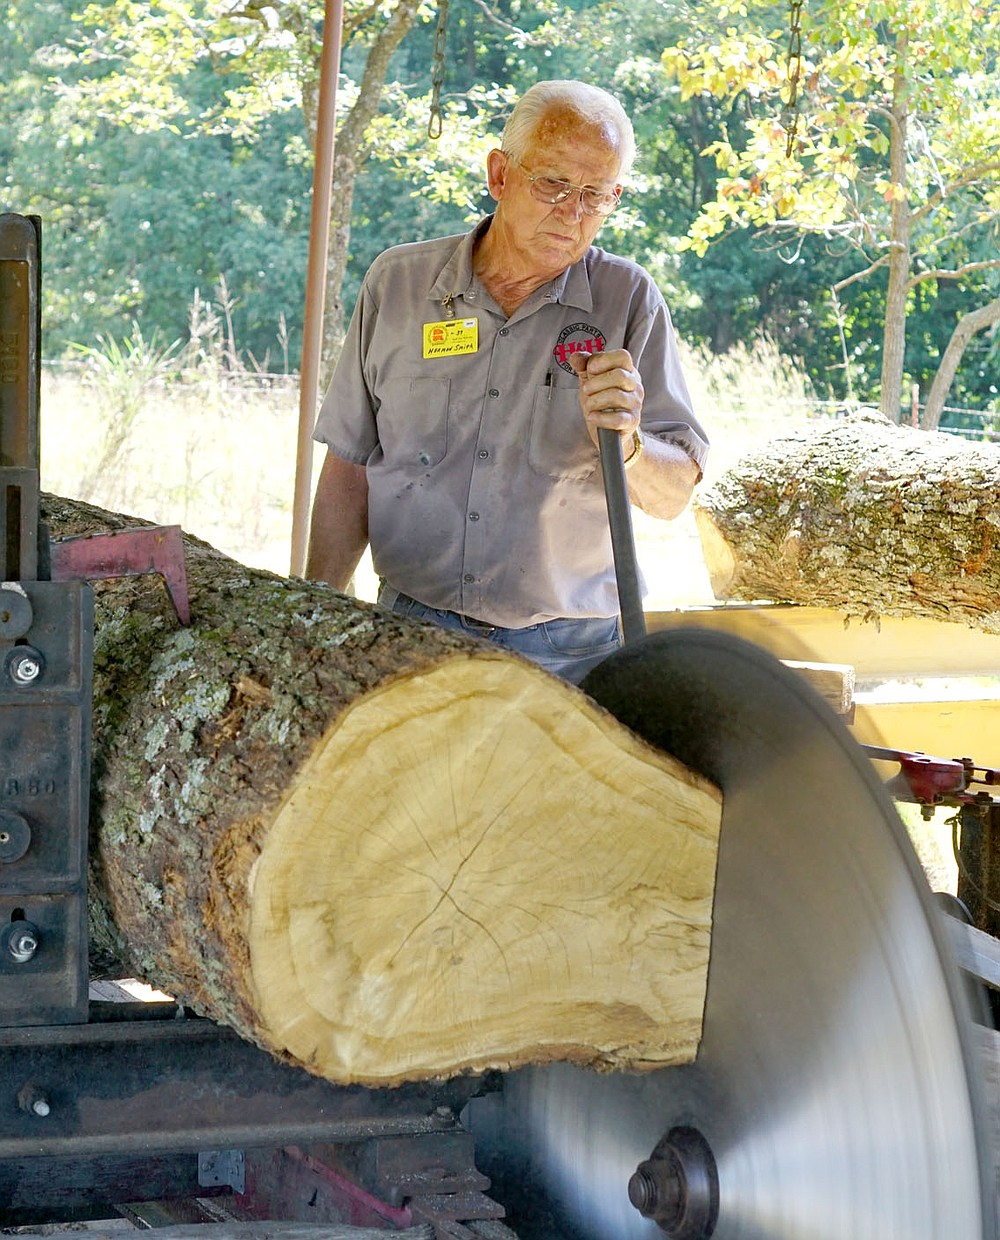 Westside Eagle Observer/RANDY MOLL Herman Smith, of Hiwasse, operates the sawmill at the Tired Iron of the Ozarks showground on Friday, Sept. 6, 2019.